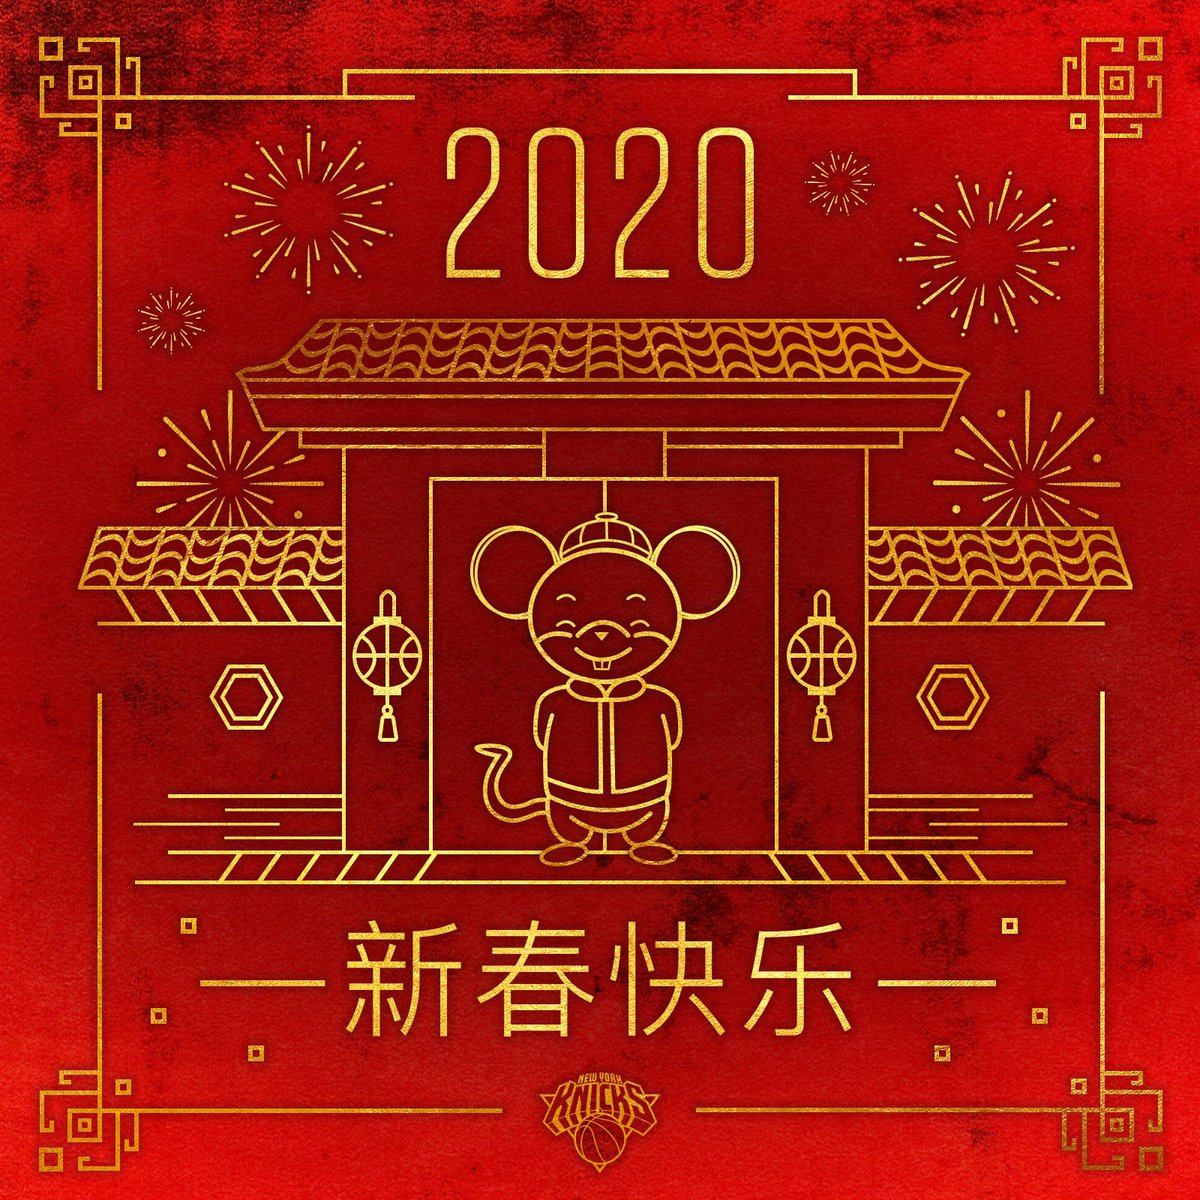 Wishing a Happy Chinese New Year to our Knicks family and all who celebrate! 纽约尼克斯祝您新春快乐 鼠年大吉 #NBACNY